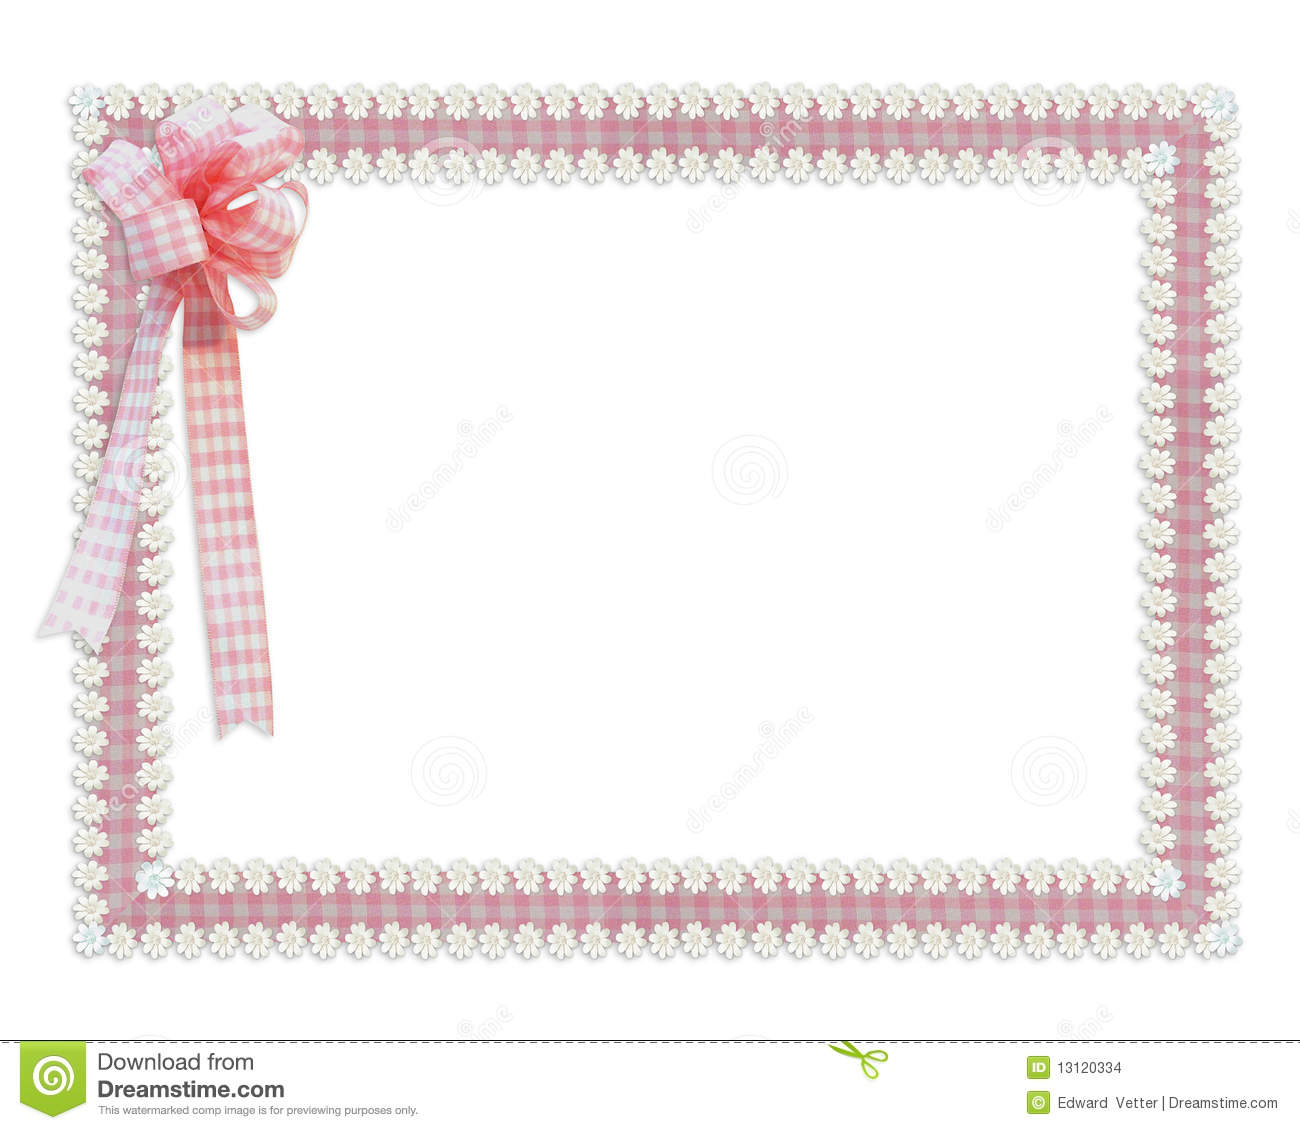 Gingham Ribbons Border Stock Images - Image: 13120334